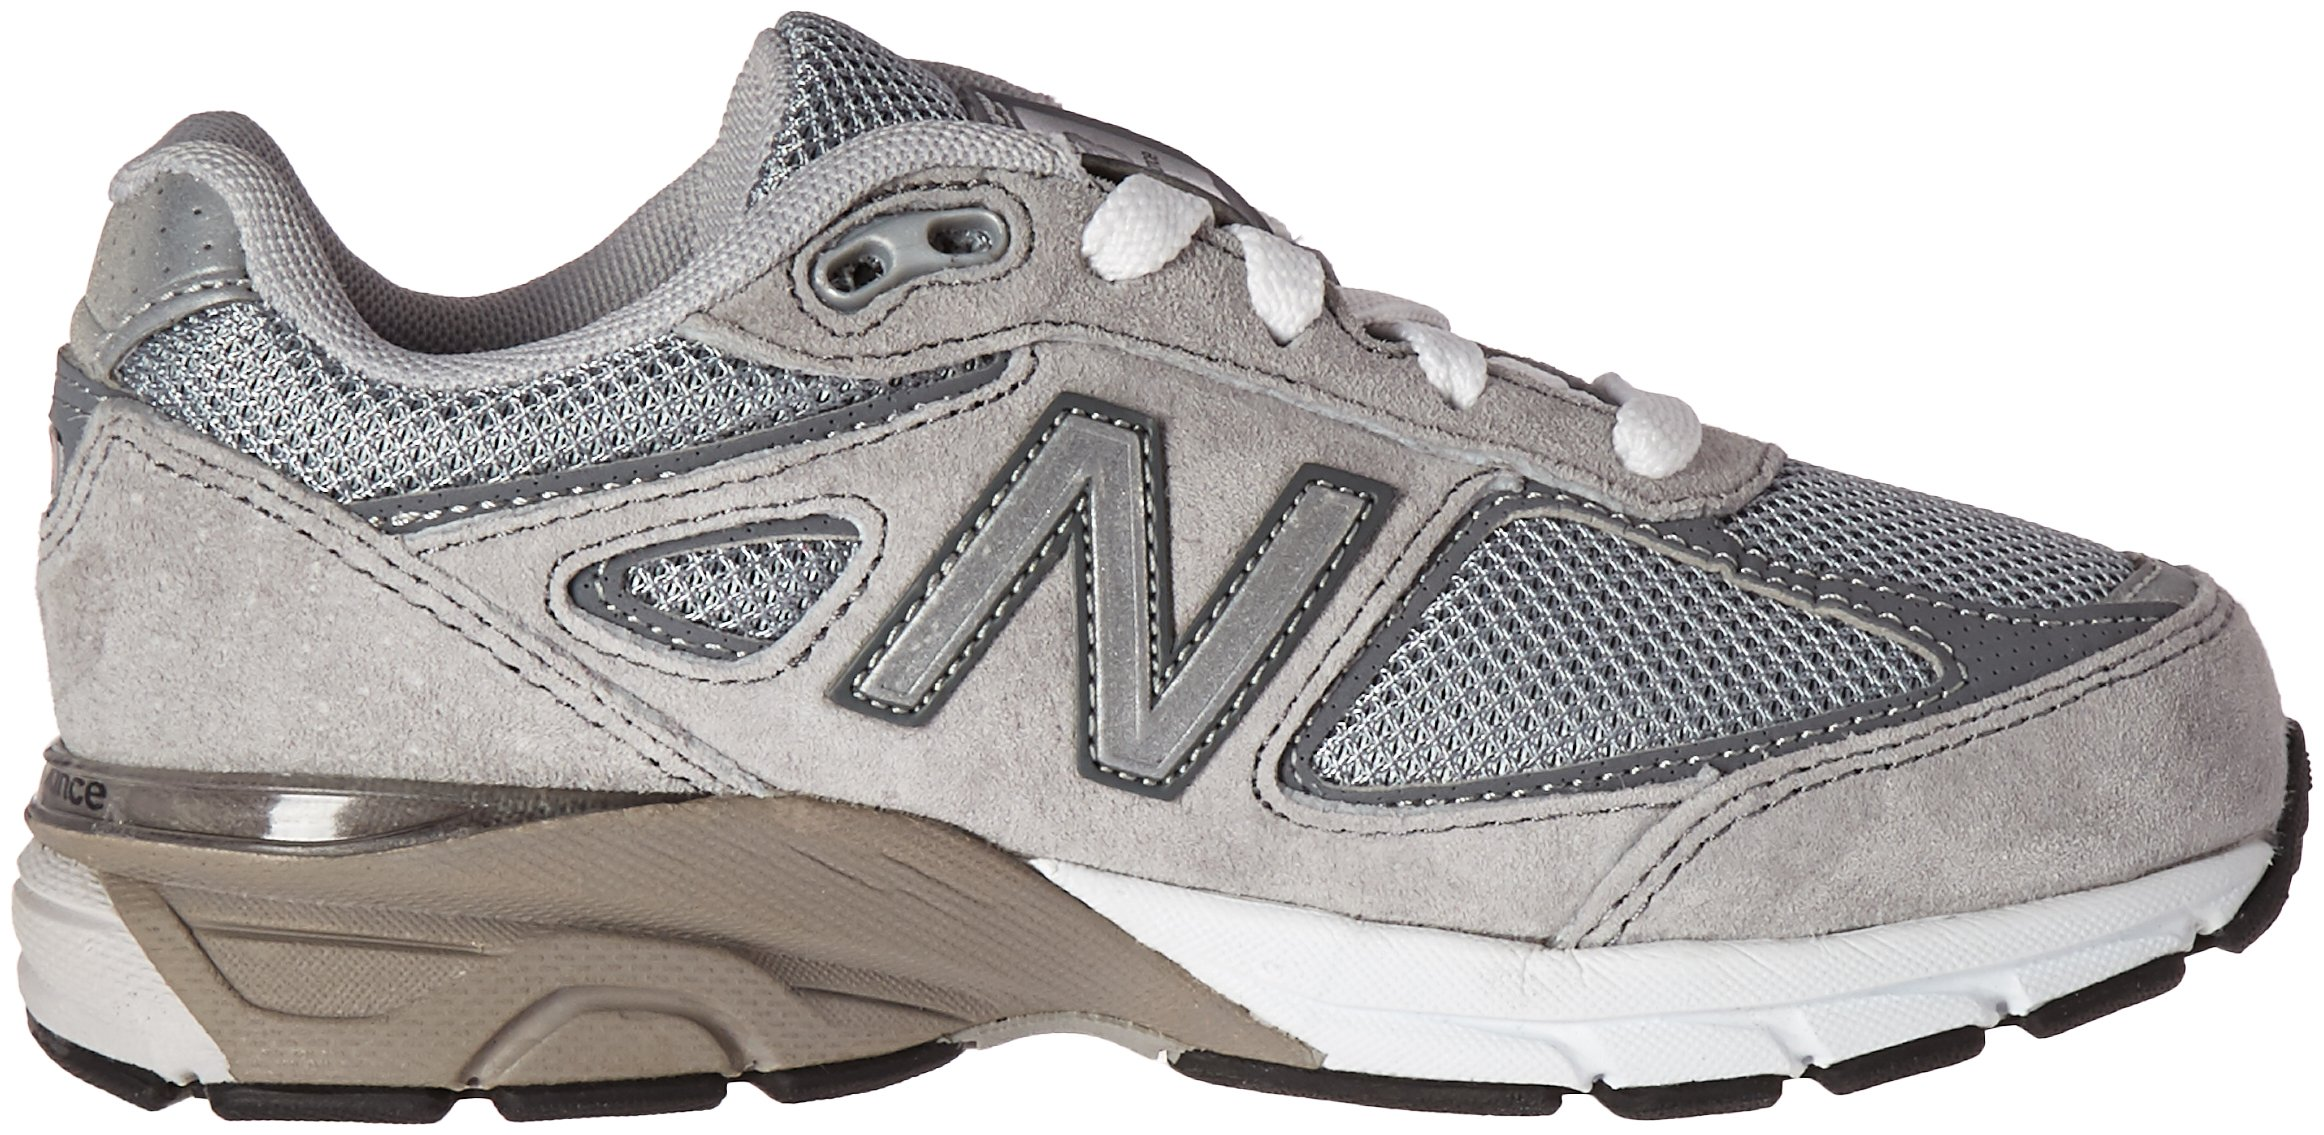 New Balance KJ990V4 Running Shoe (Little Kid/Big Kid), Grey/Grey, 1.5 M US Little Kid by New Balance (Image #7)